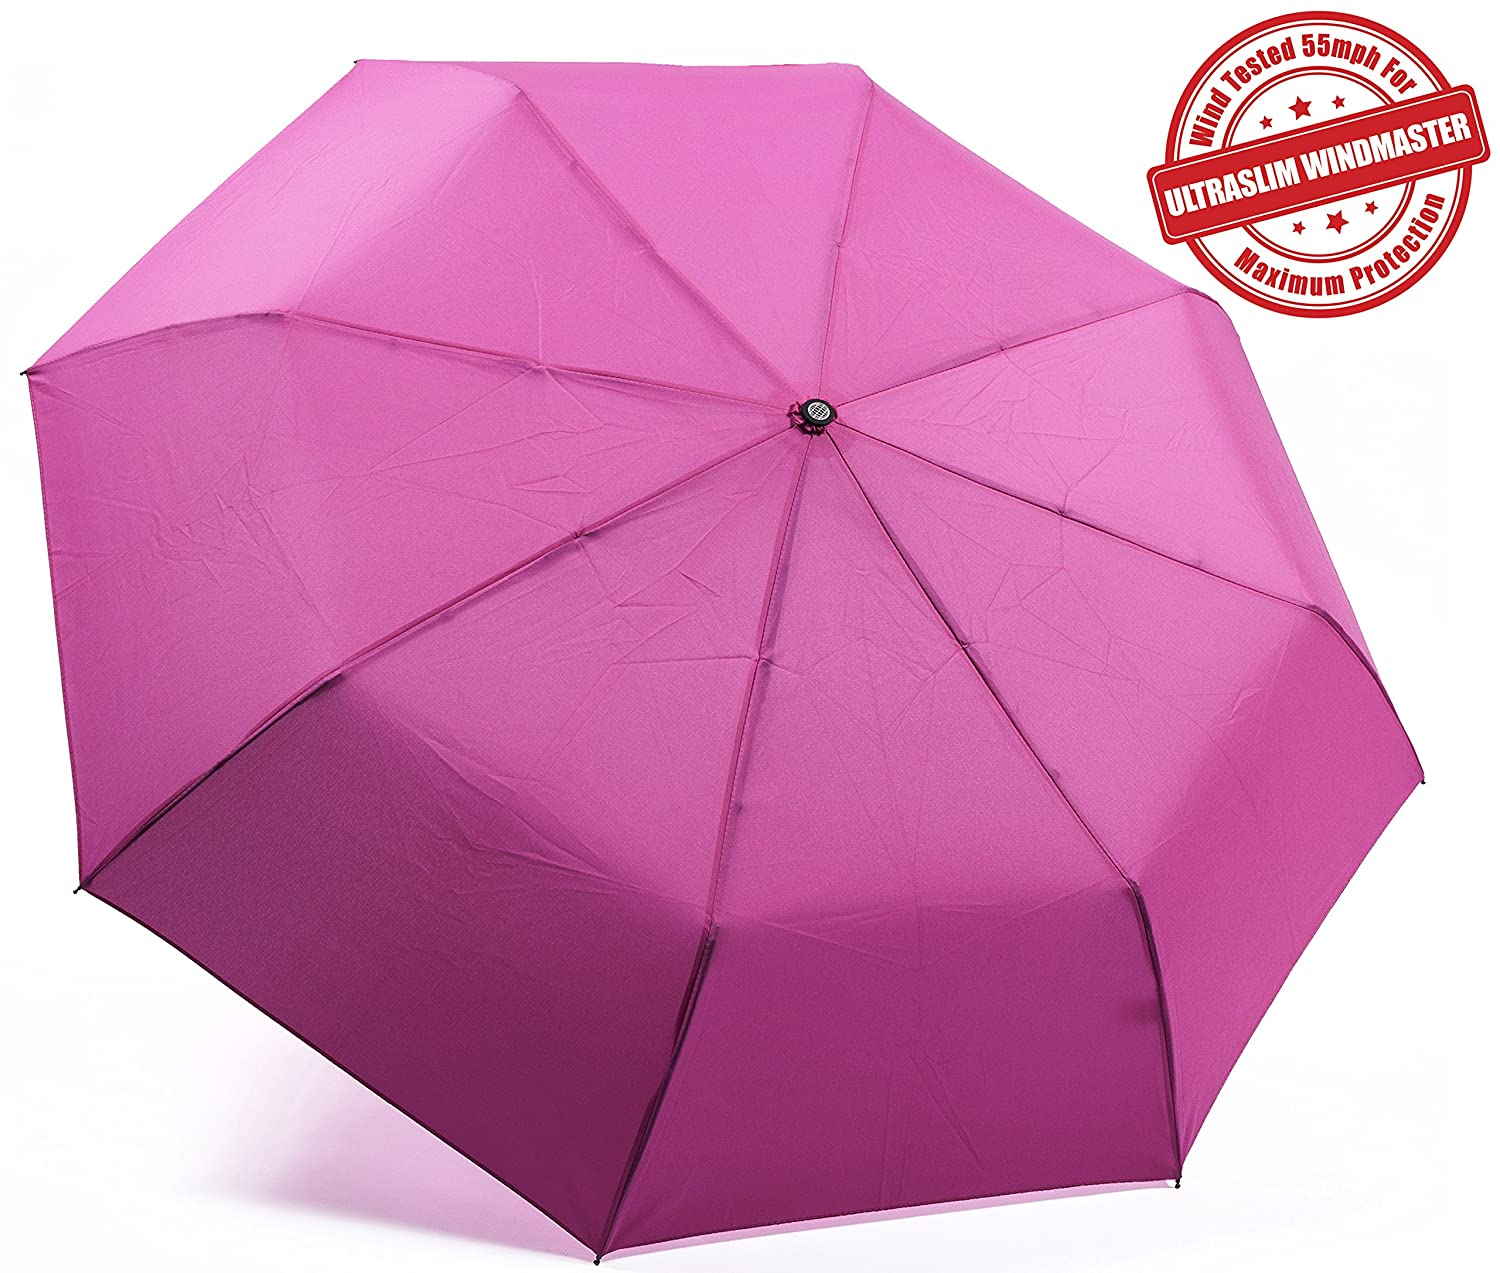 Kolumbo Unbreakable Windproof Umbrellas Tested 55 MPH BEWARE of Knockoffs Innovative & Patent Pending, Auto Open Close, Won't Break If Inverted, Durability Tested 5000 Times